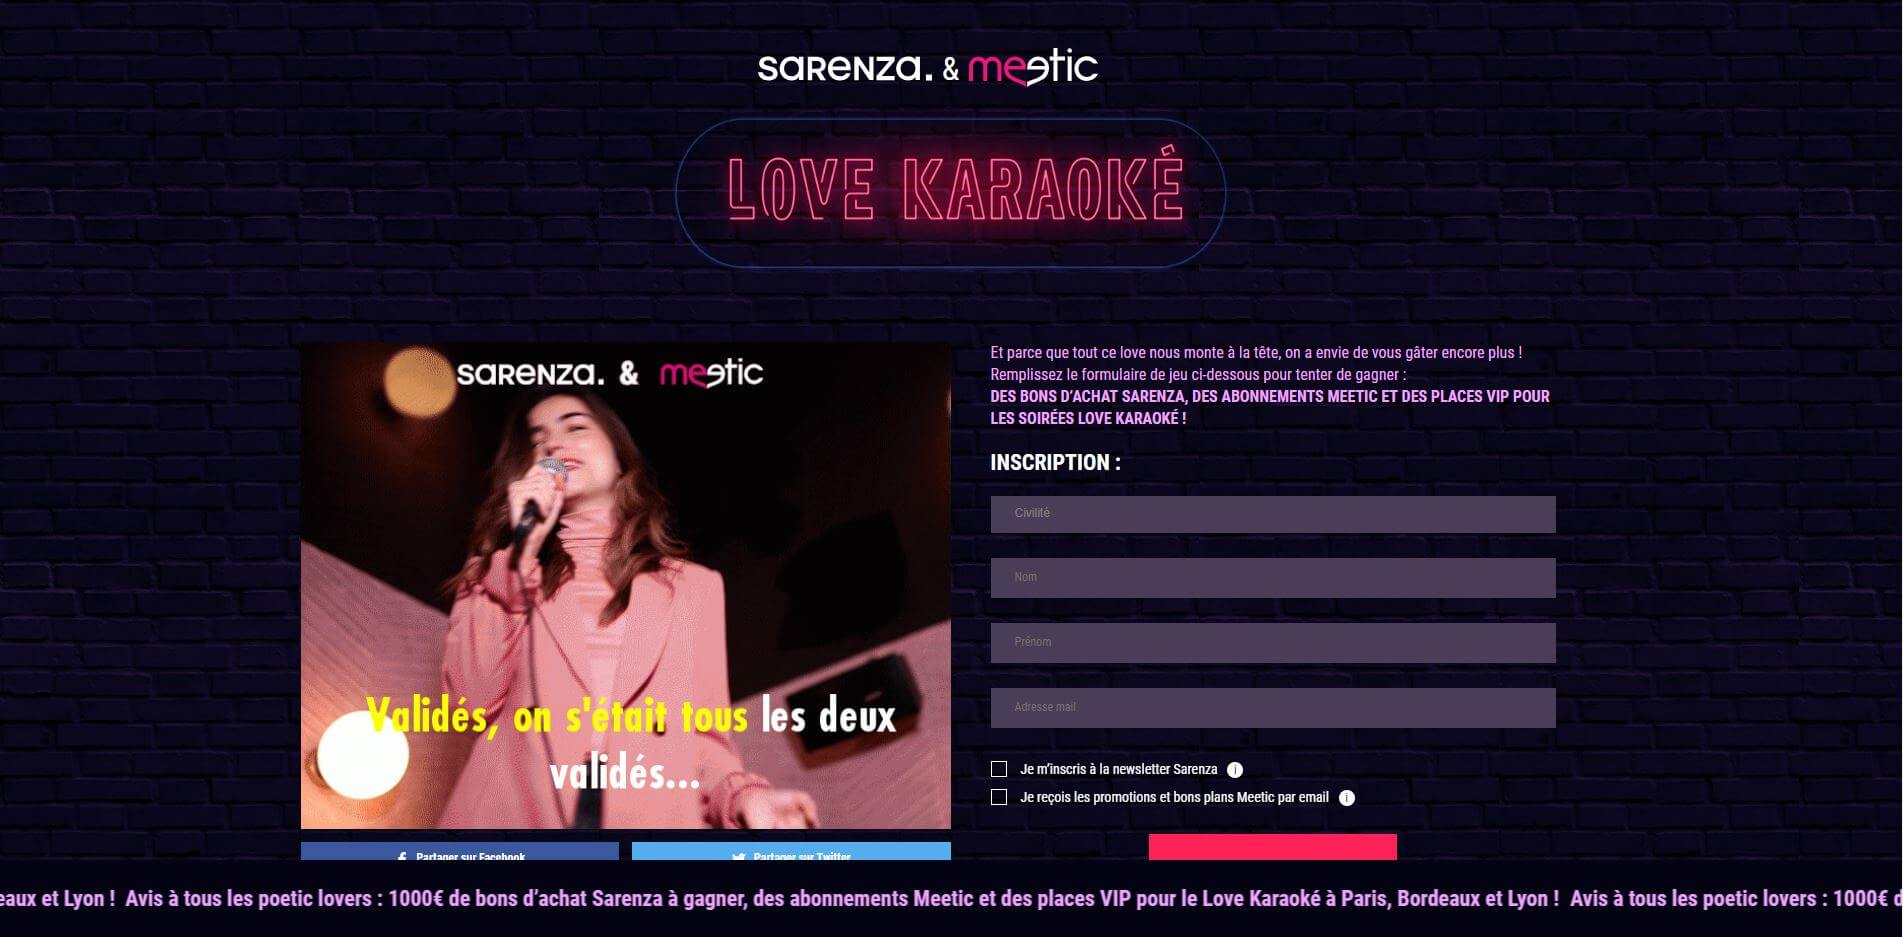 opération-love-karaoké-gif-saint-valentin-sarenza-meetic